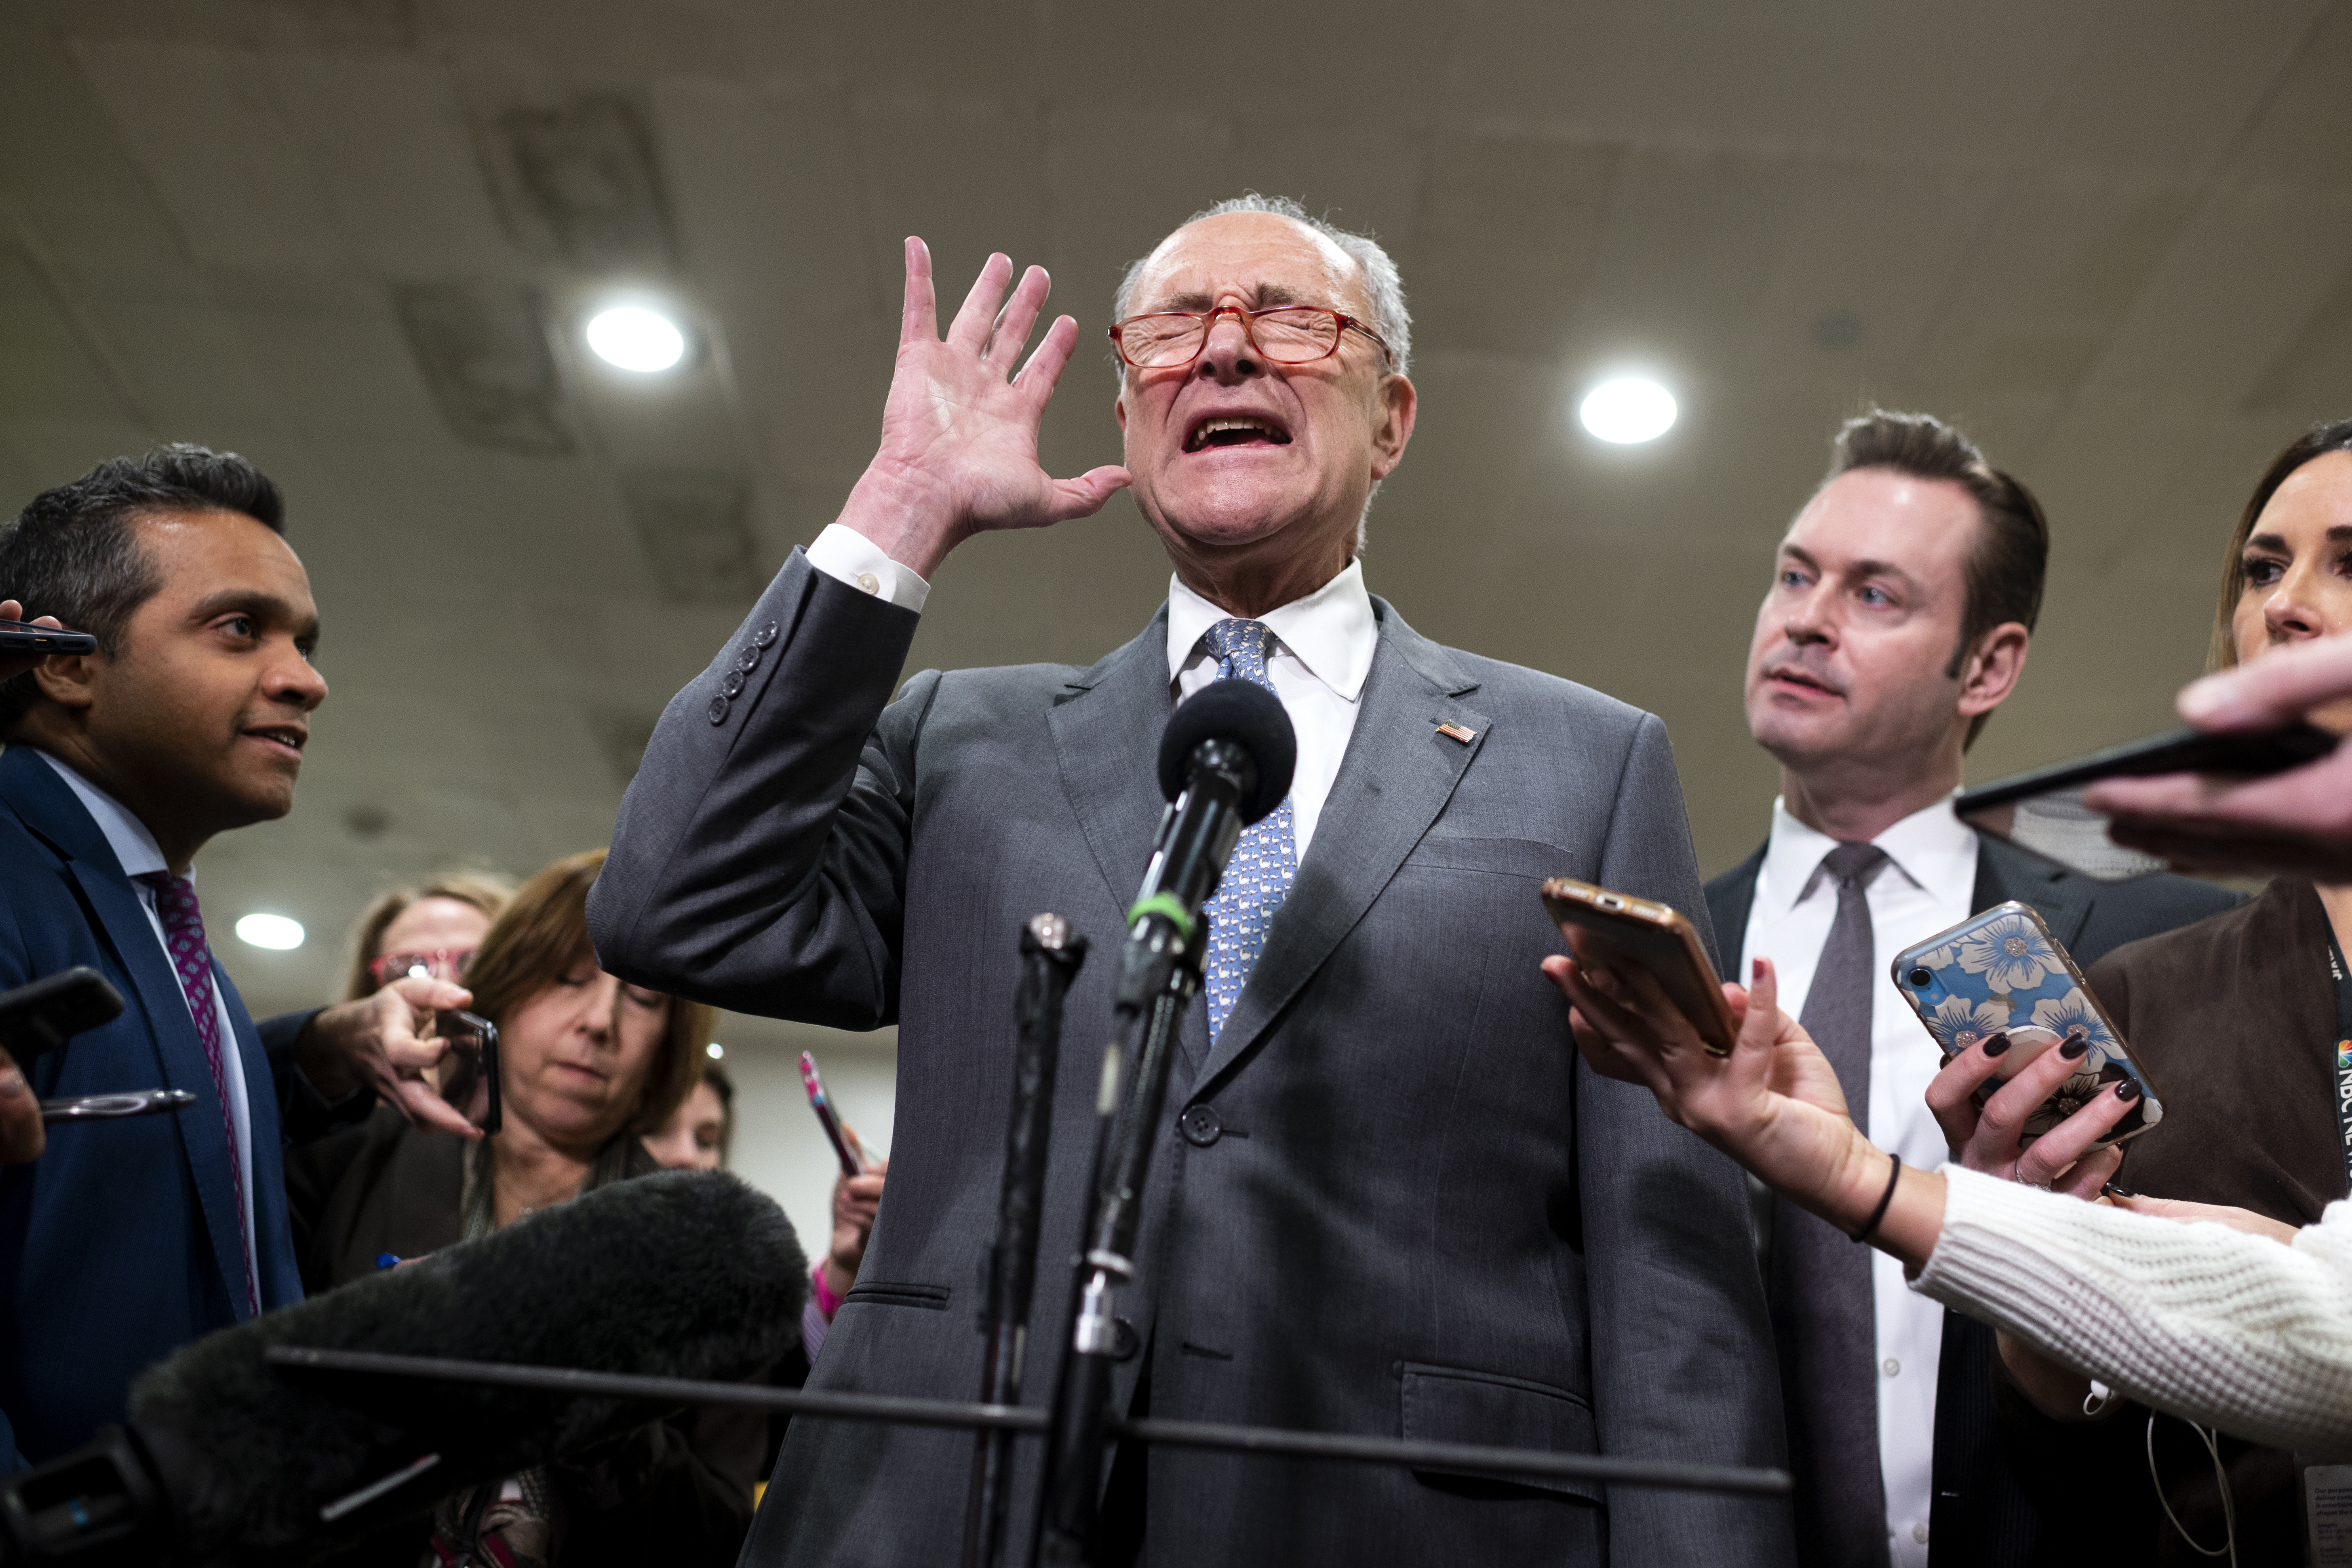 UNITED STATES - JANUARY 27: Senate Minority Leader Chuck Schumer, D-N.Y., tells reporters to ask questions one at a time during a news conference during a break in the impeachment trial of President Donald Trump on Monday, Jan. 27, 2020. (Photo by Caroline Brehman/CQ Roll Call)